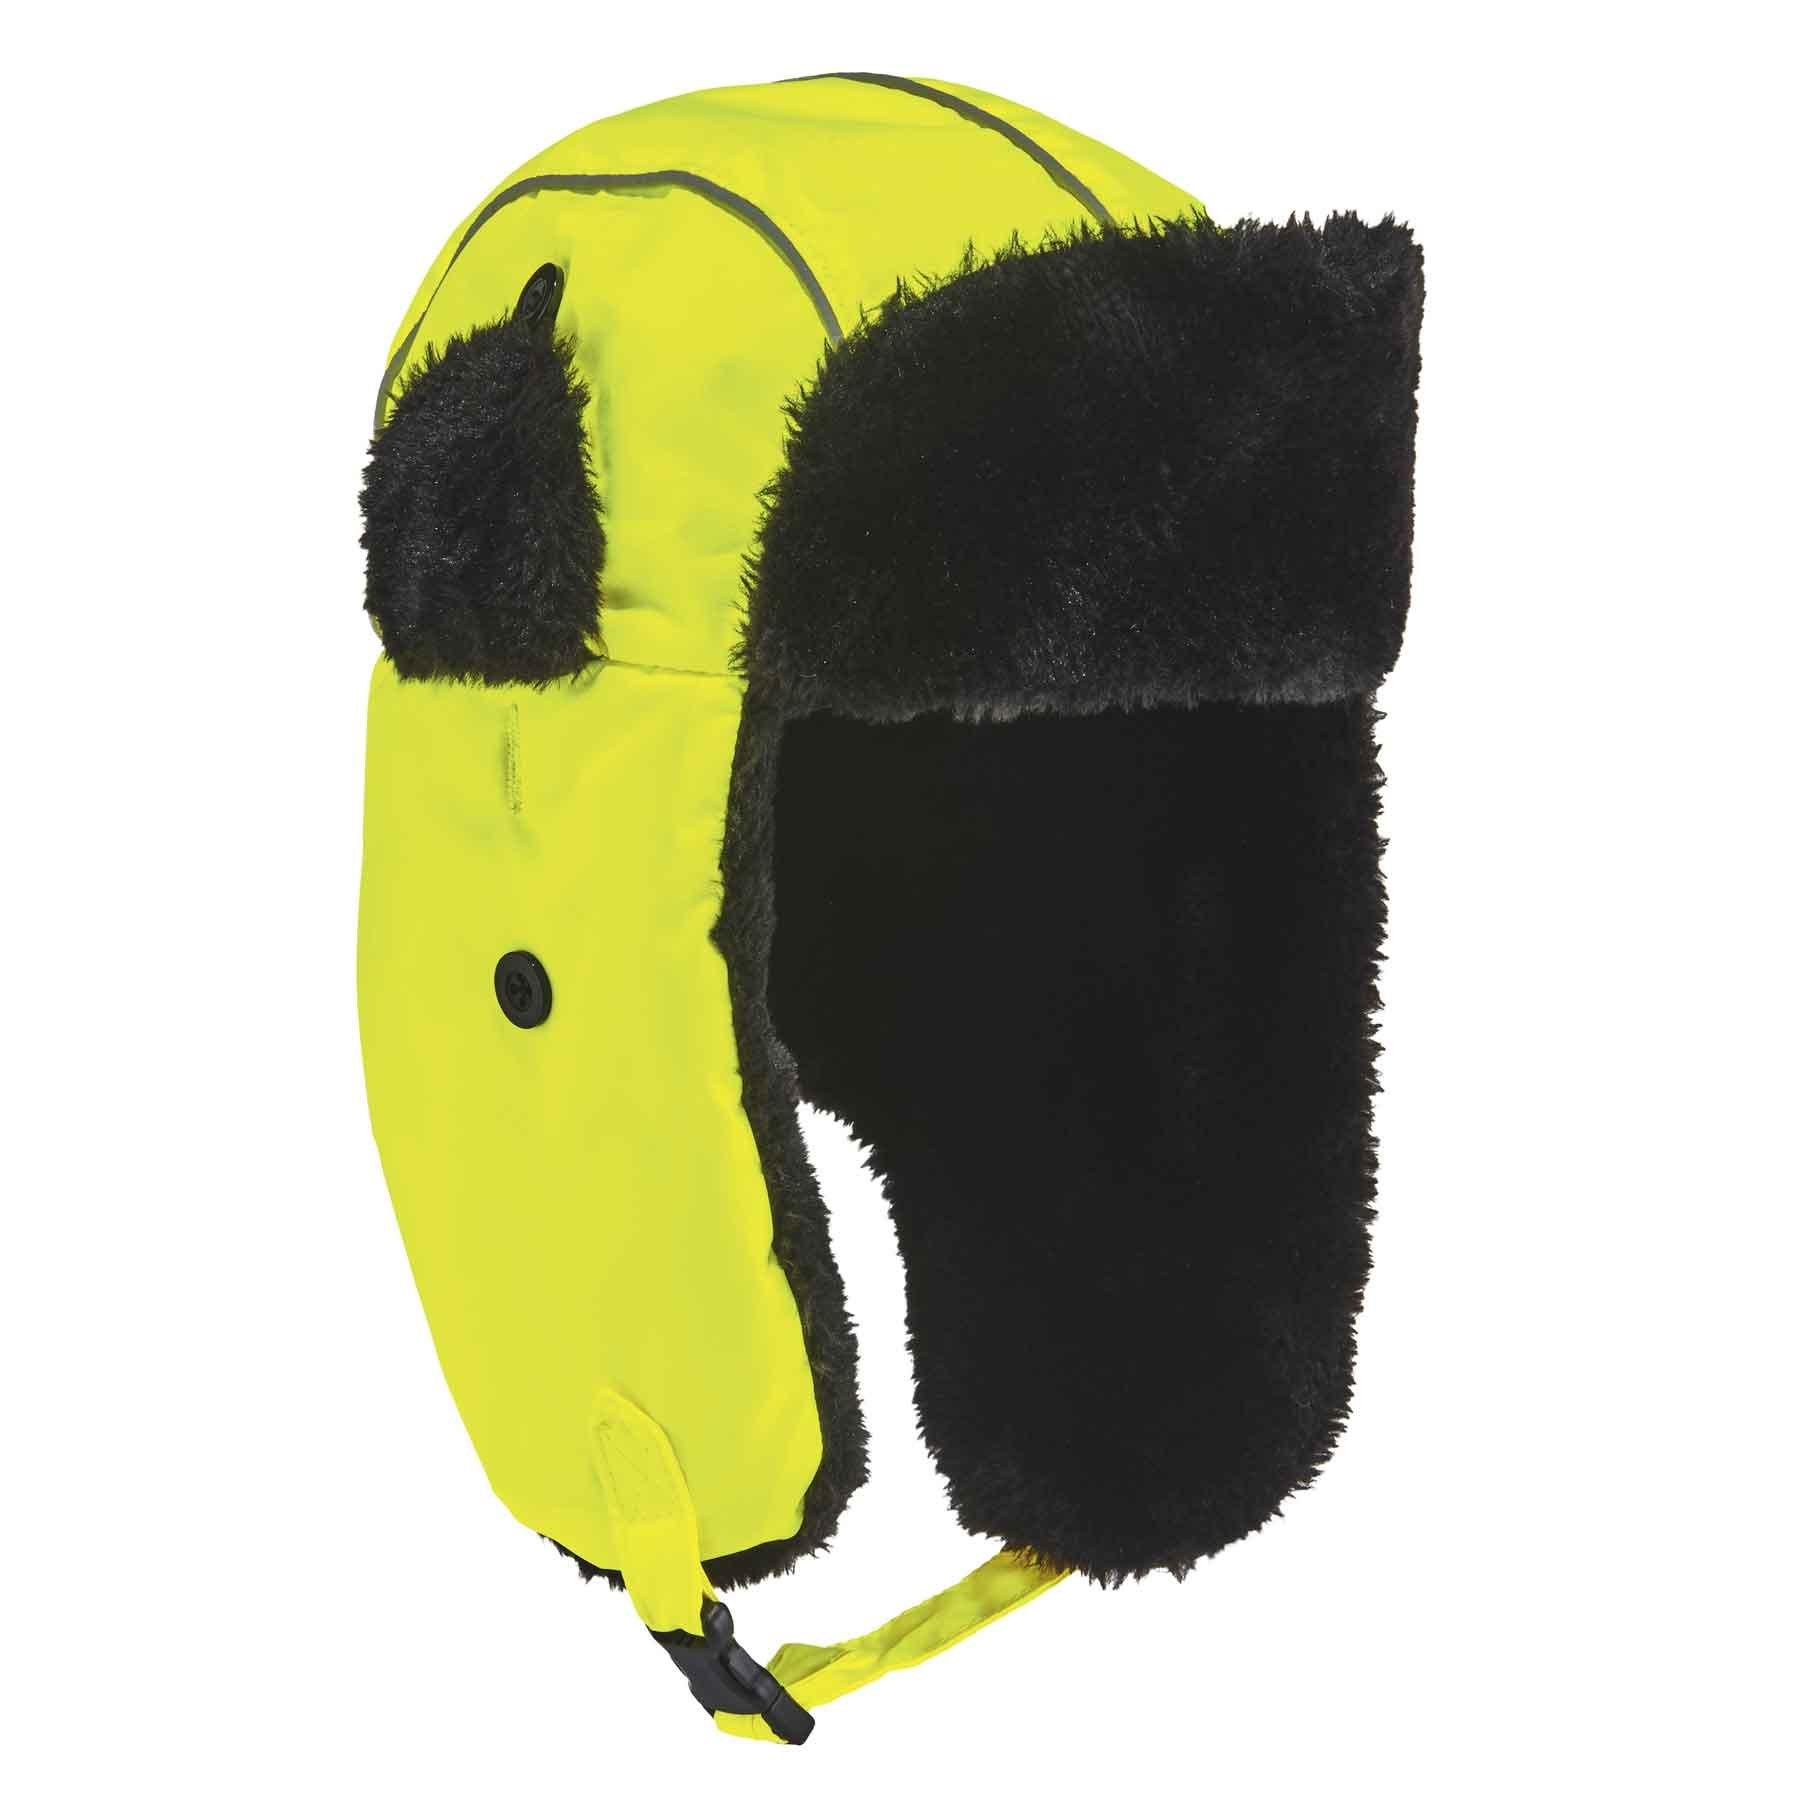 Ergodyne N-Ferno 6802 High Visibility Thermal Winter Trapper Hat, Lime, Large/X-Large